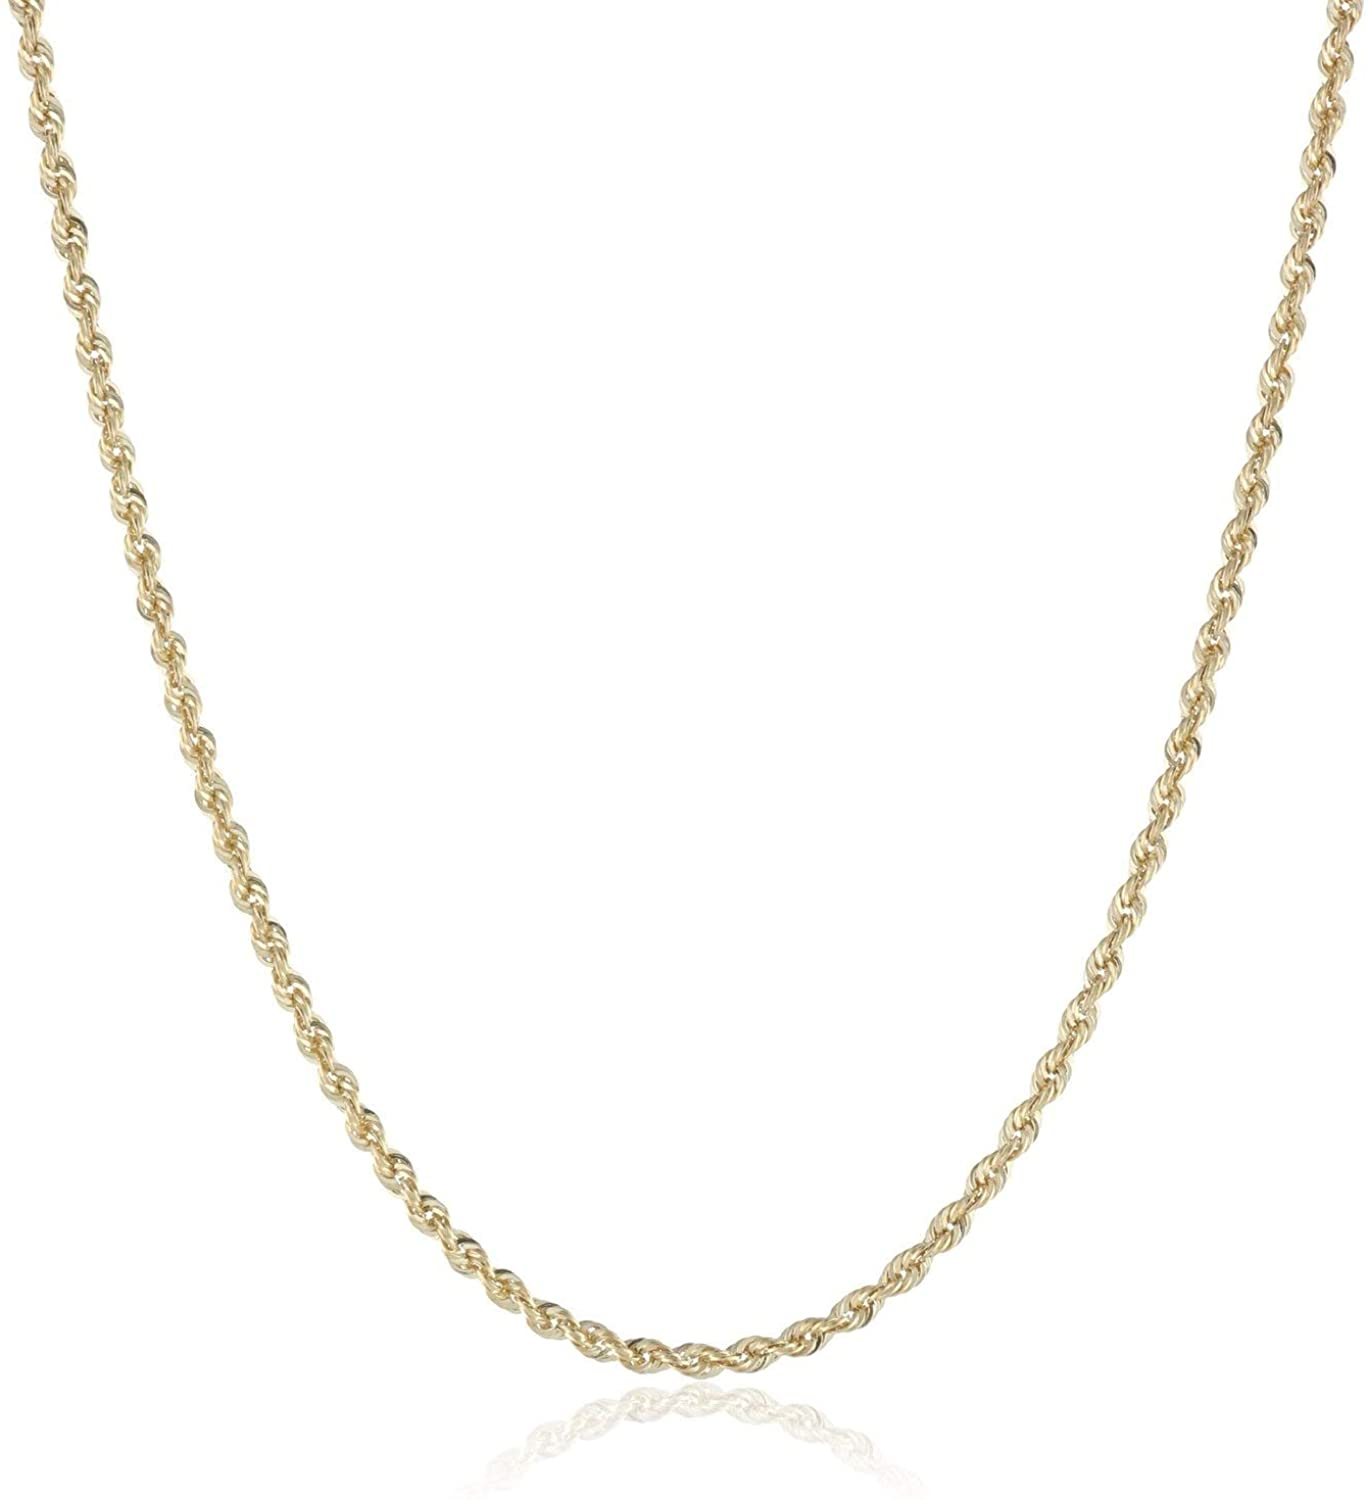 14K Solid Yellow Gold 1.5mm, 2mm, or 3.2mm Diamond Cut Rope Chain Necklace Unisex Sizes 16